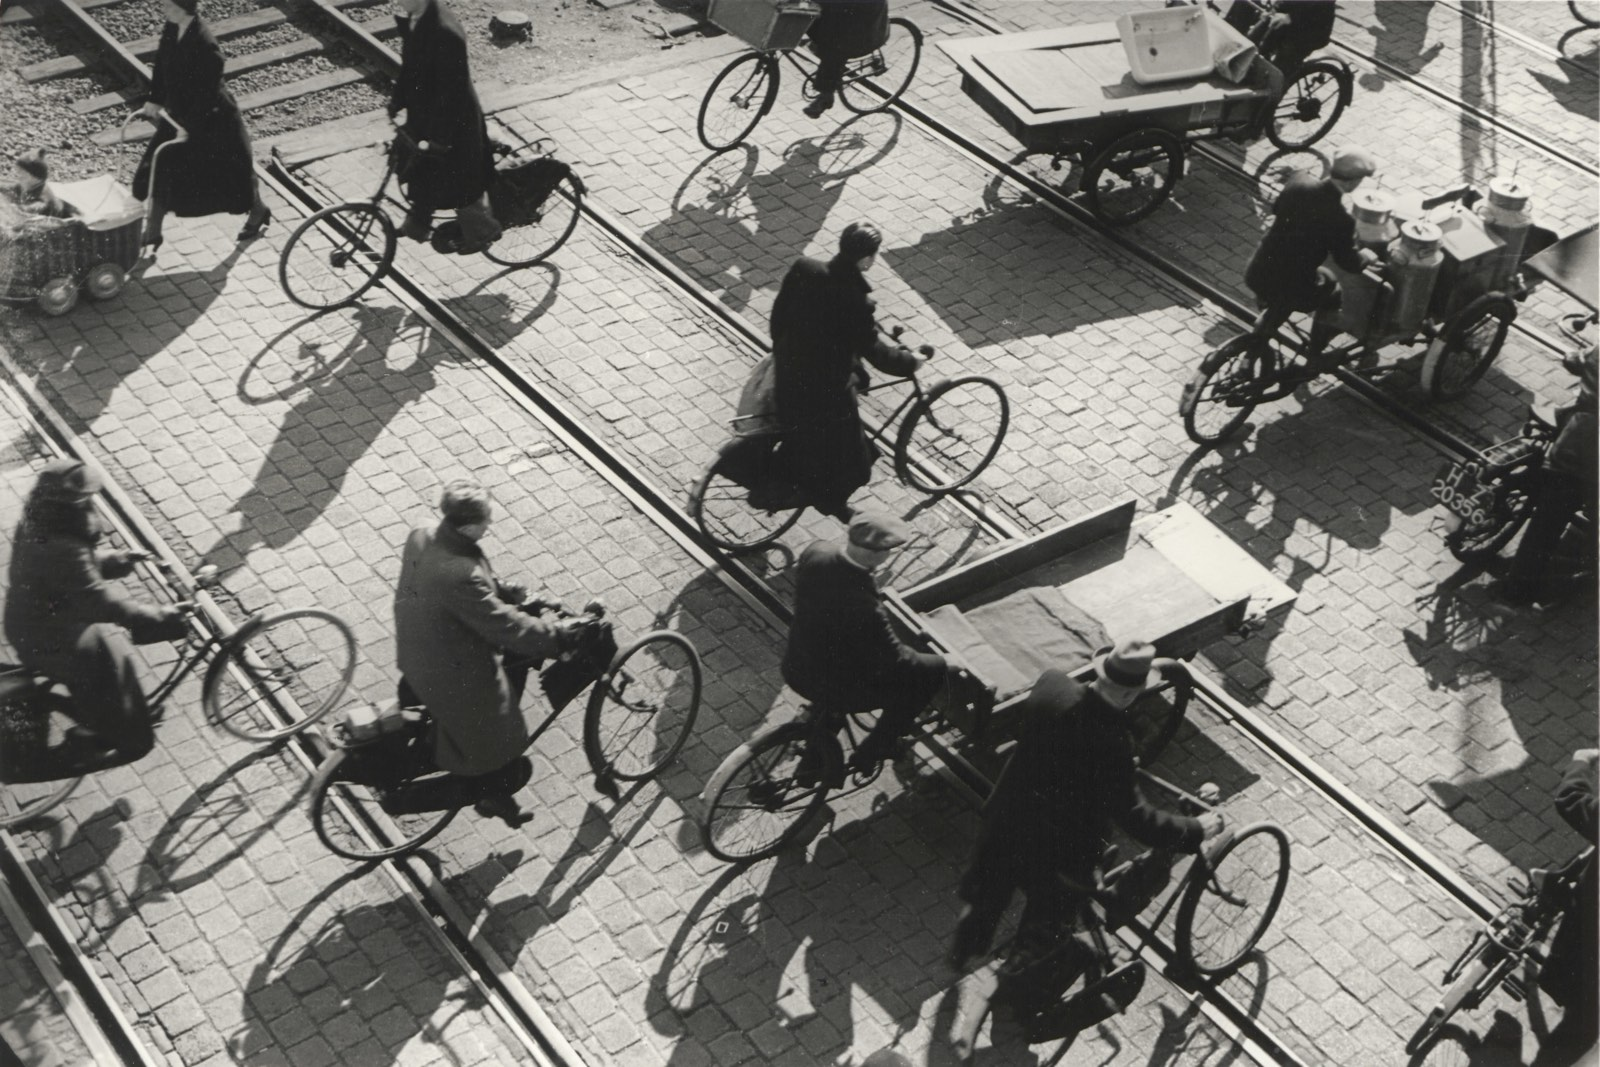 Emmy Andriesse, Fietsers over treinrails / Cyclists passing train rails, Den Haag, ca. 1935-1937. Collectie: Universitaire Bibliotheken Leiden